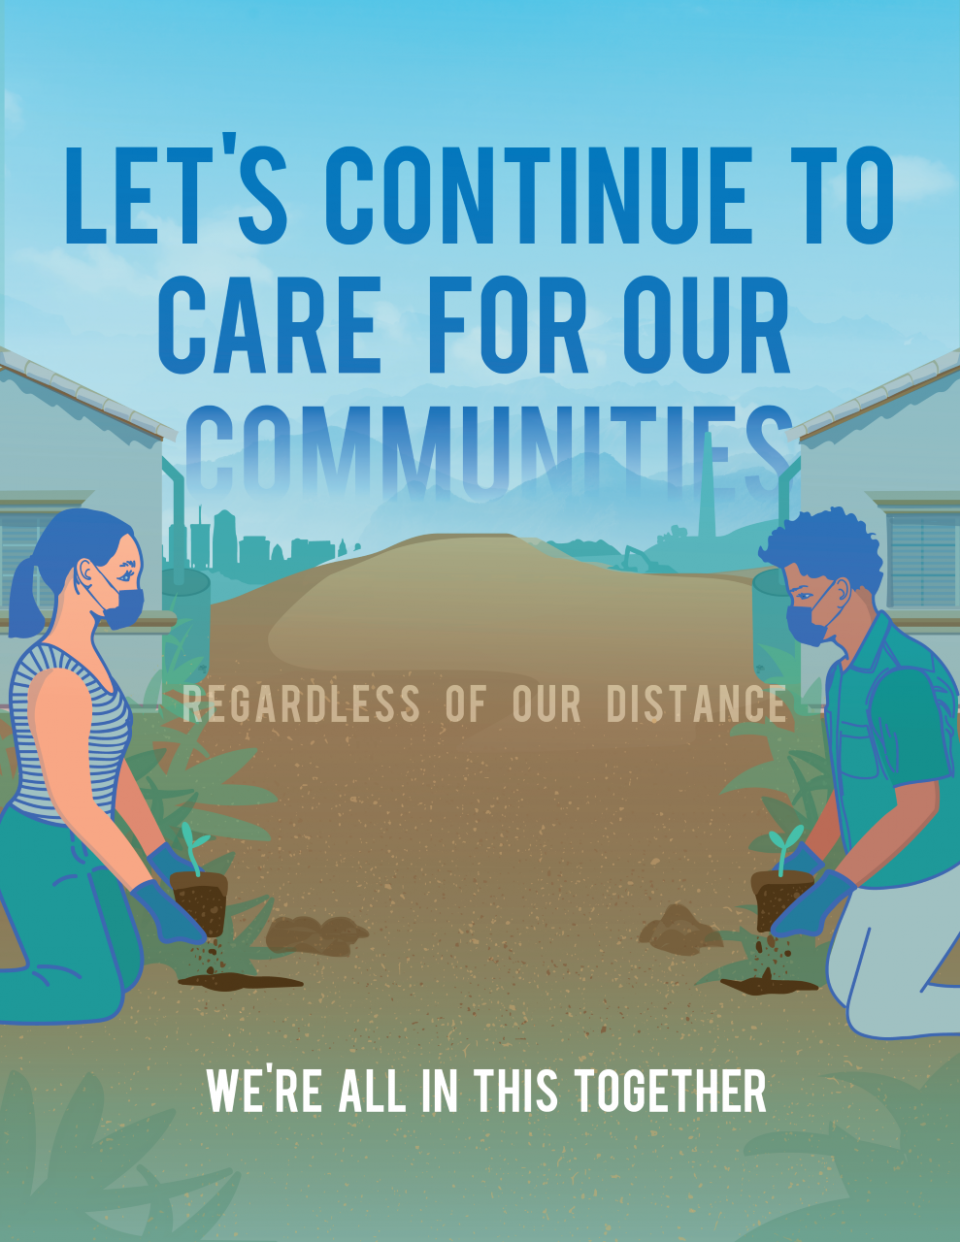 Let's continue to care for our communities